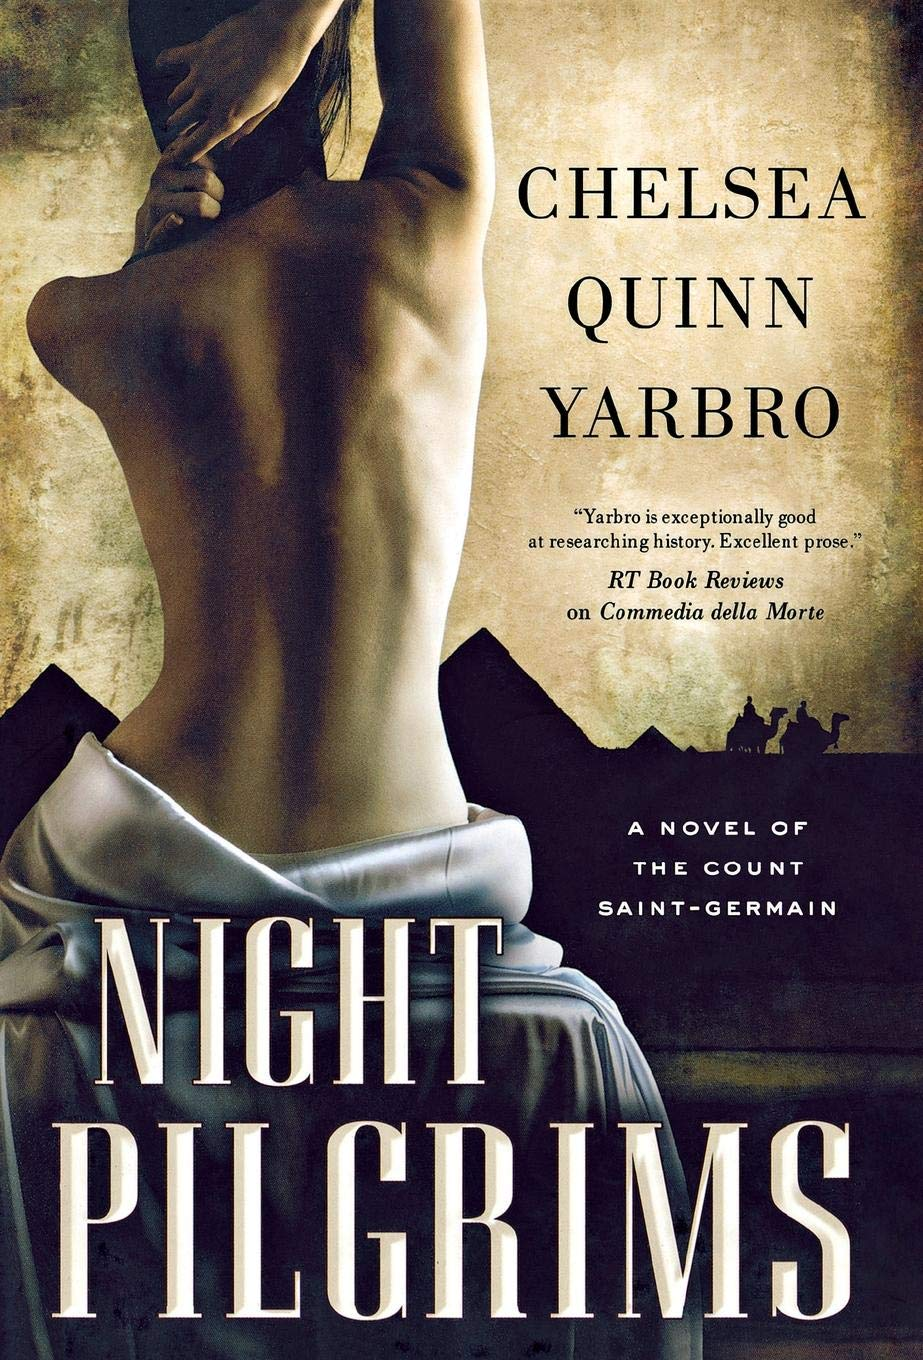 Night Pilgrims A Saint Germain Novel St Germain Yarbro Chelsea Quinn 9780765334008 Amazon Com Books